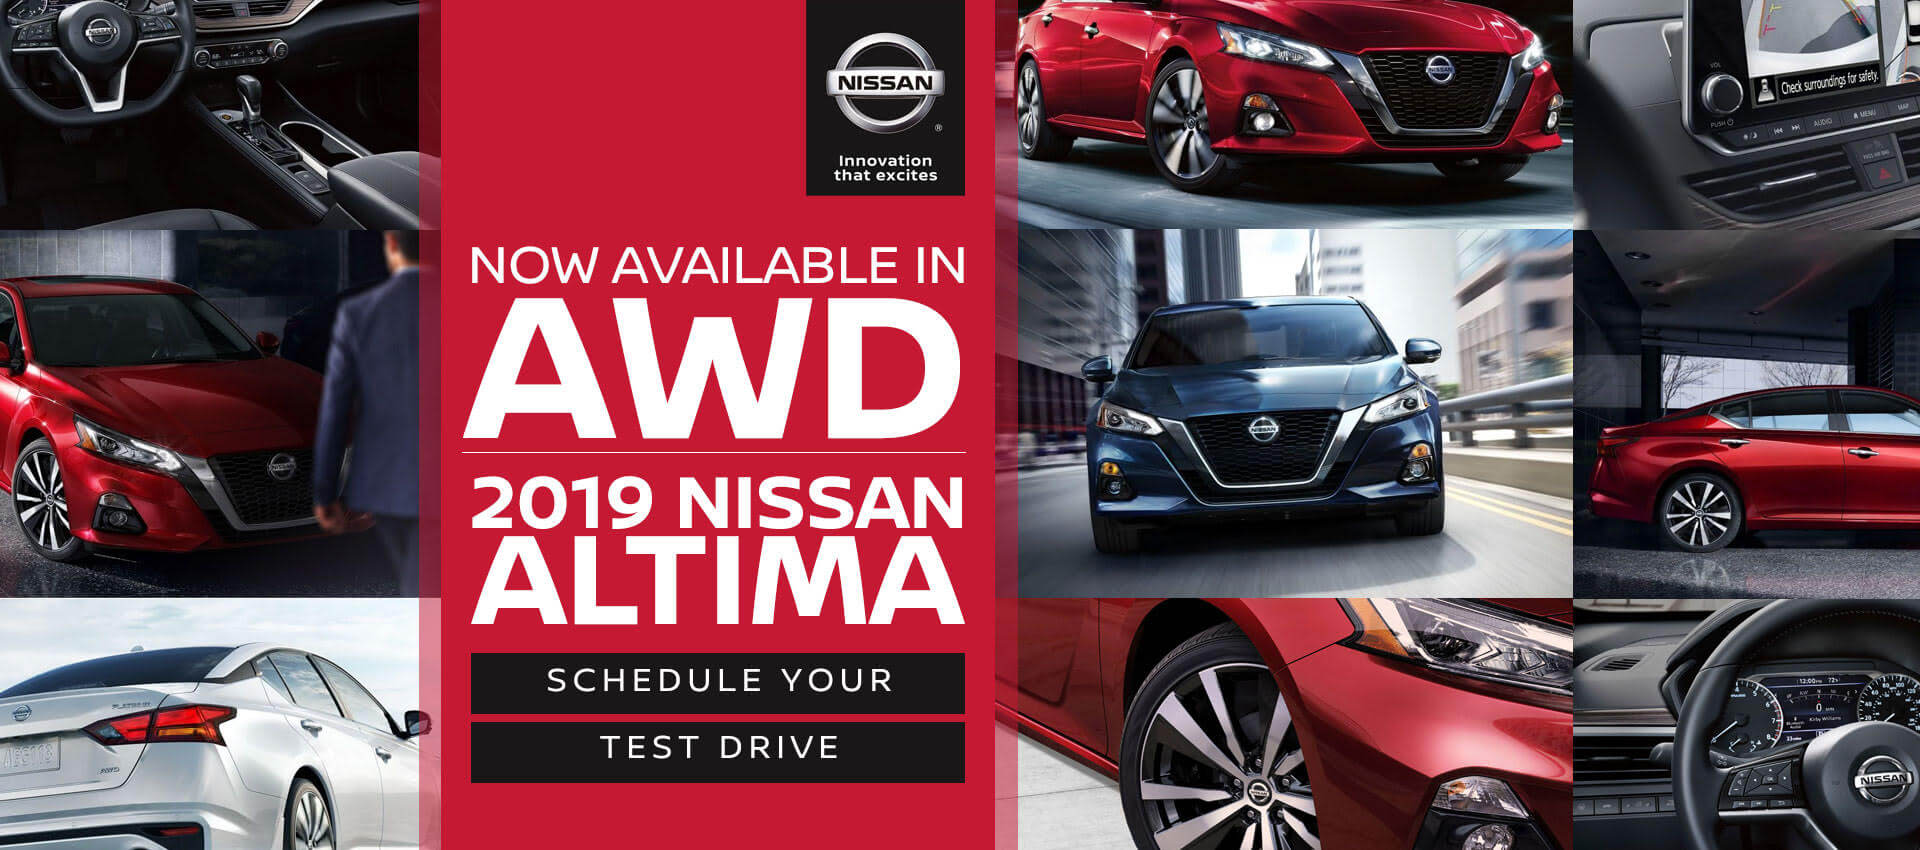 New Altima AWD